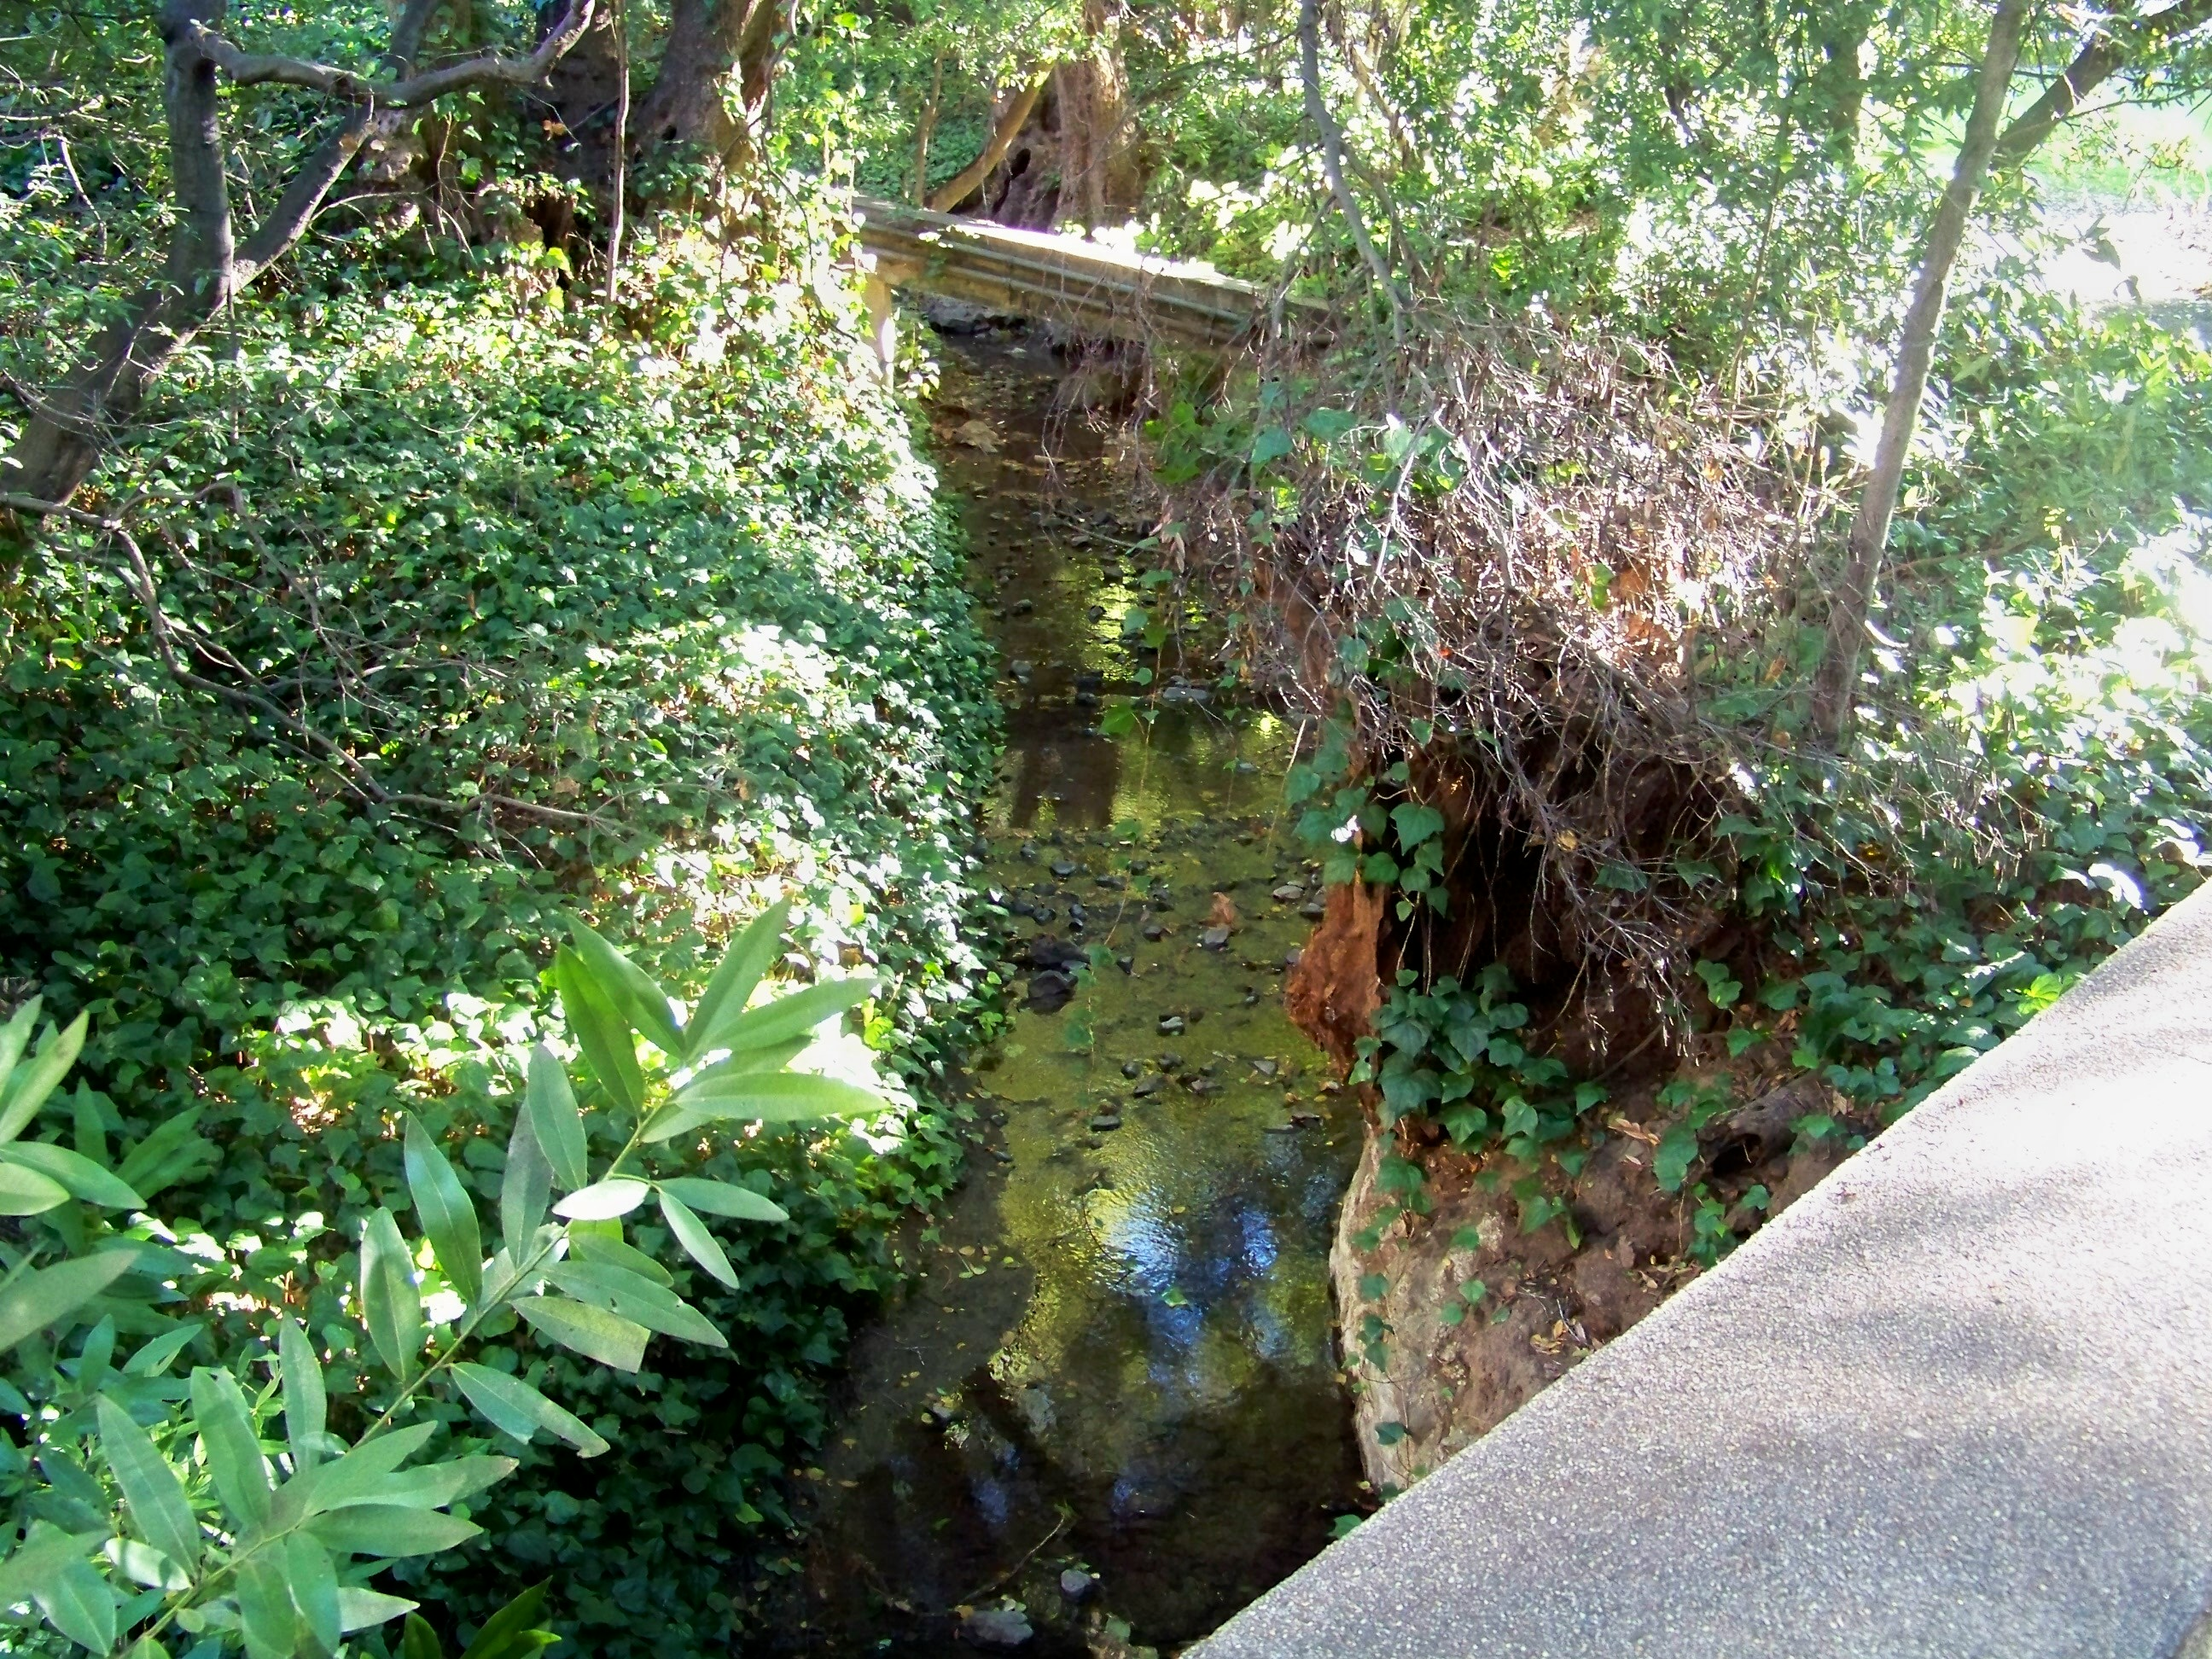 http://upload.wikimedia.org/wikipedia/commons/a/ab/StrawberryCreek1.JPG